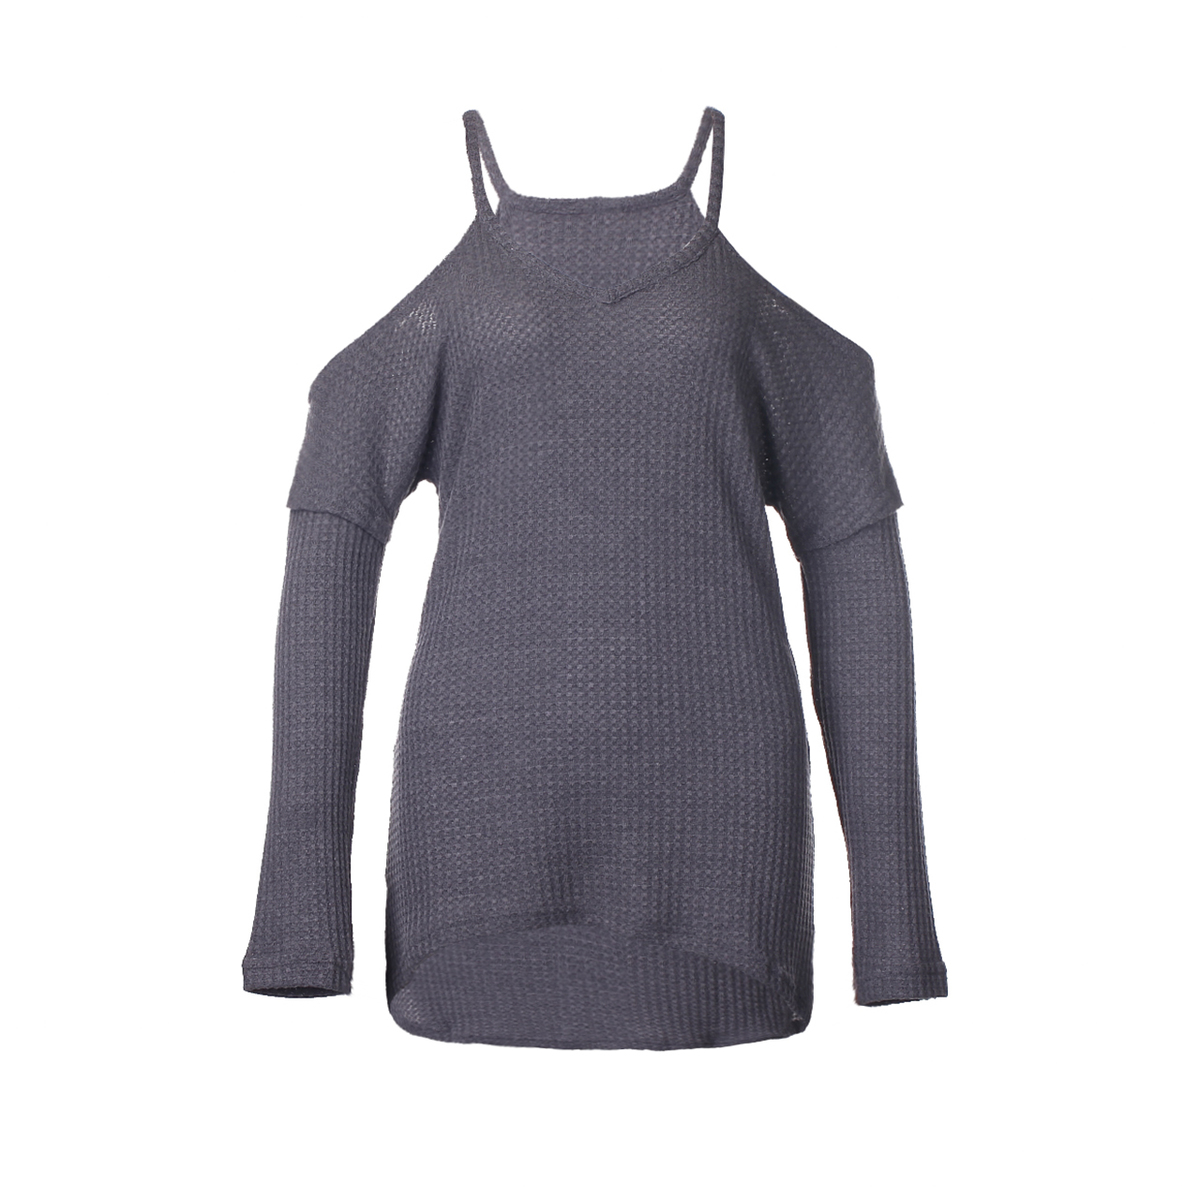 Womens T-shirt Long Sleeve Cold Shoulder Ladies Kintted Jumper Pullover Tops Autumn Spring New Fashion Women Clothes T-Shirts